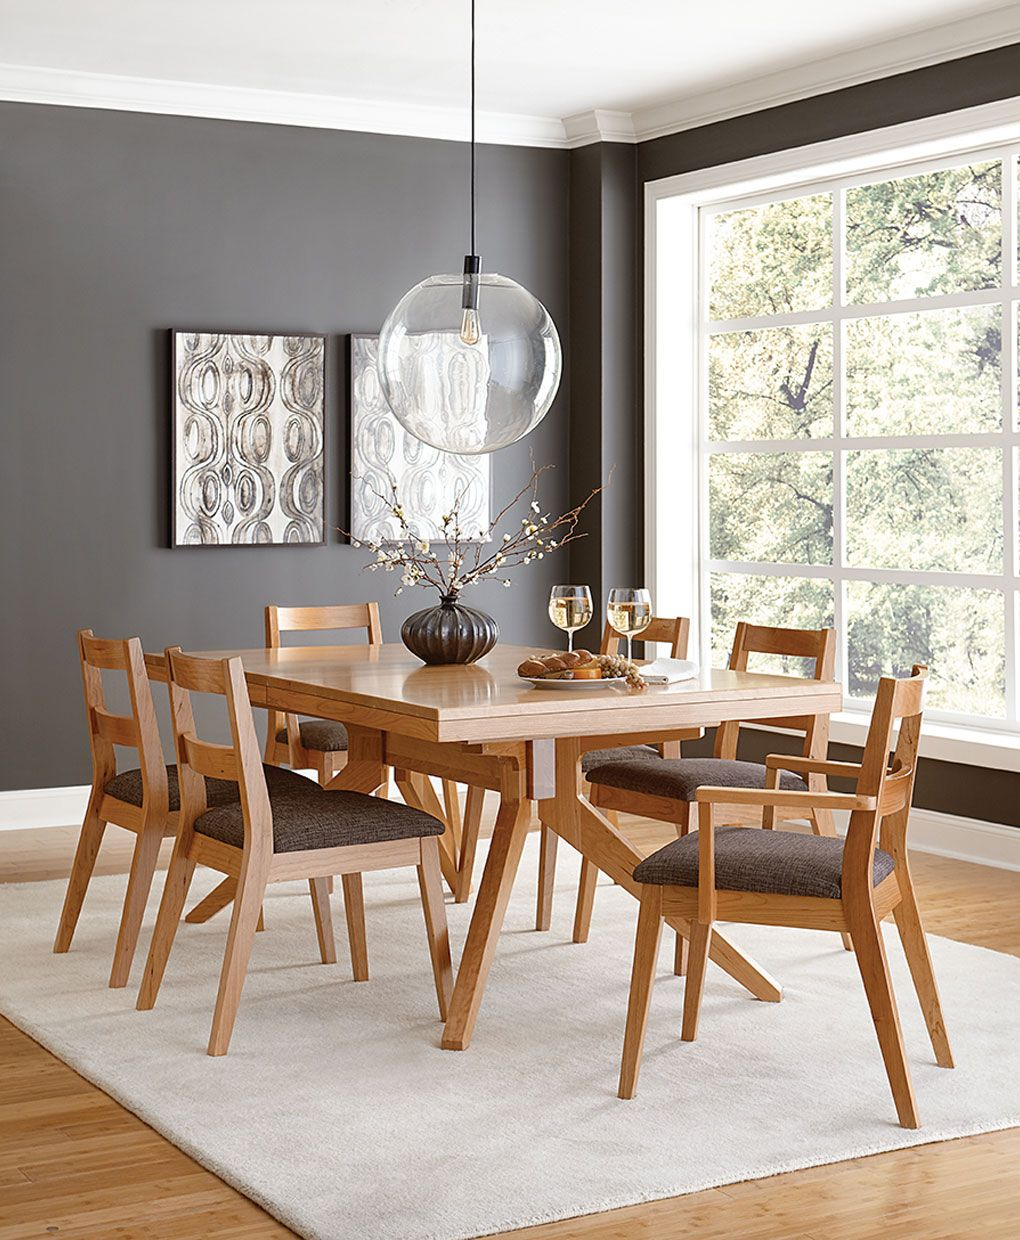 Sonora Amish Table